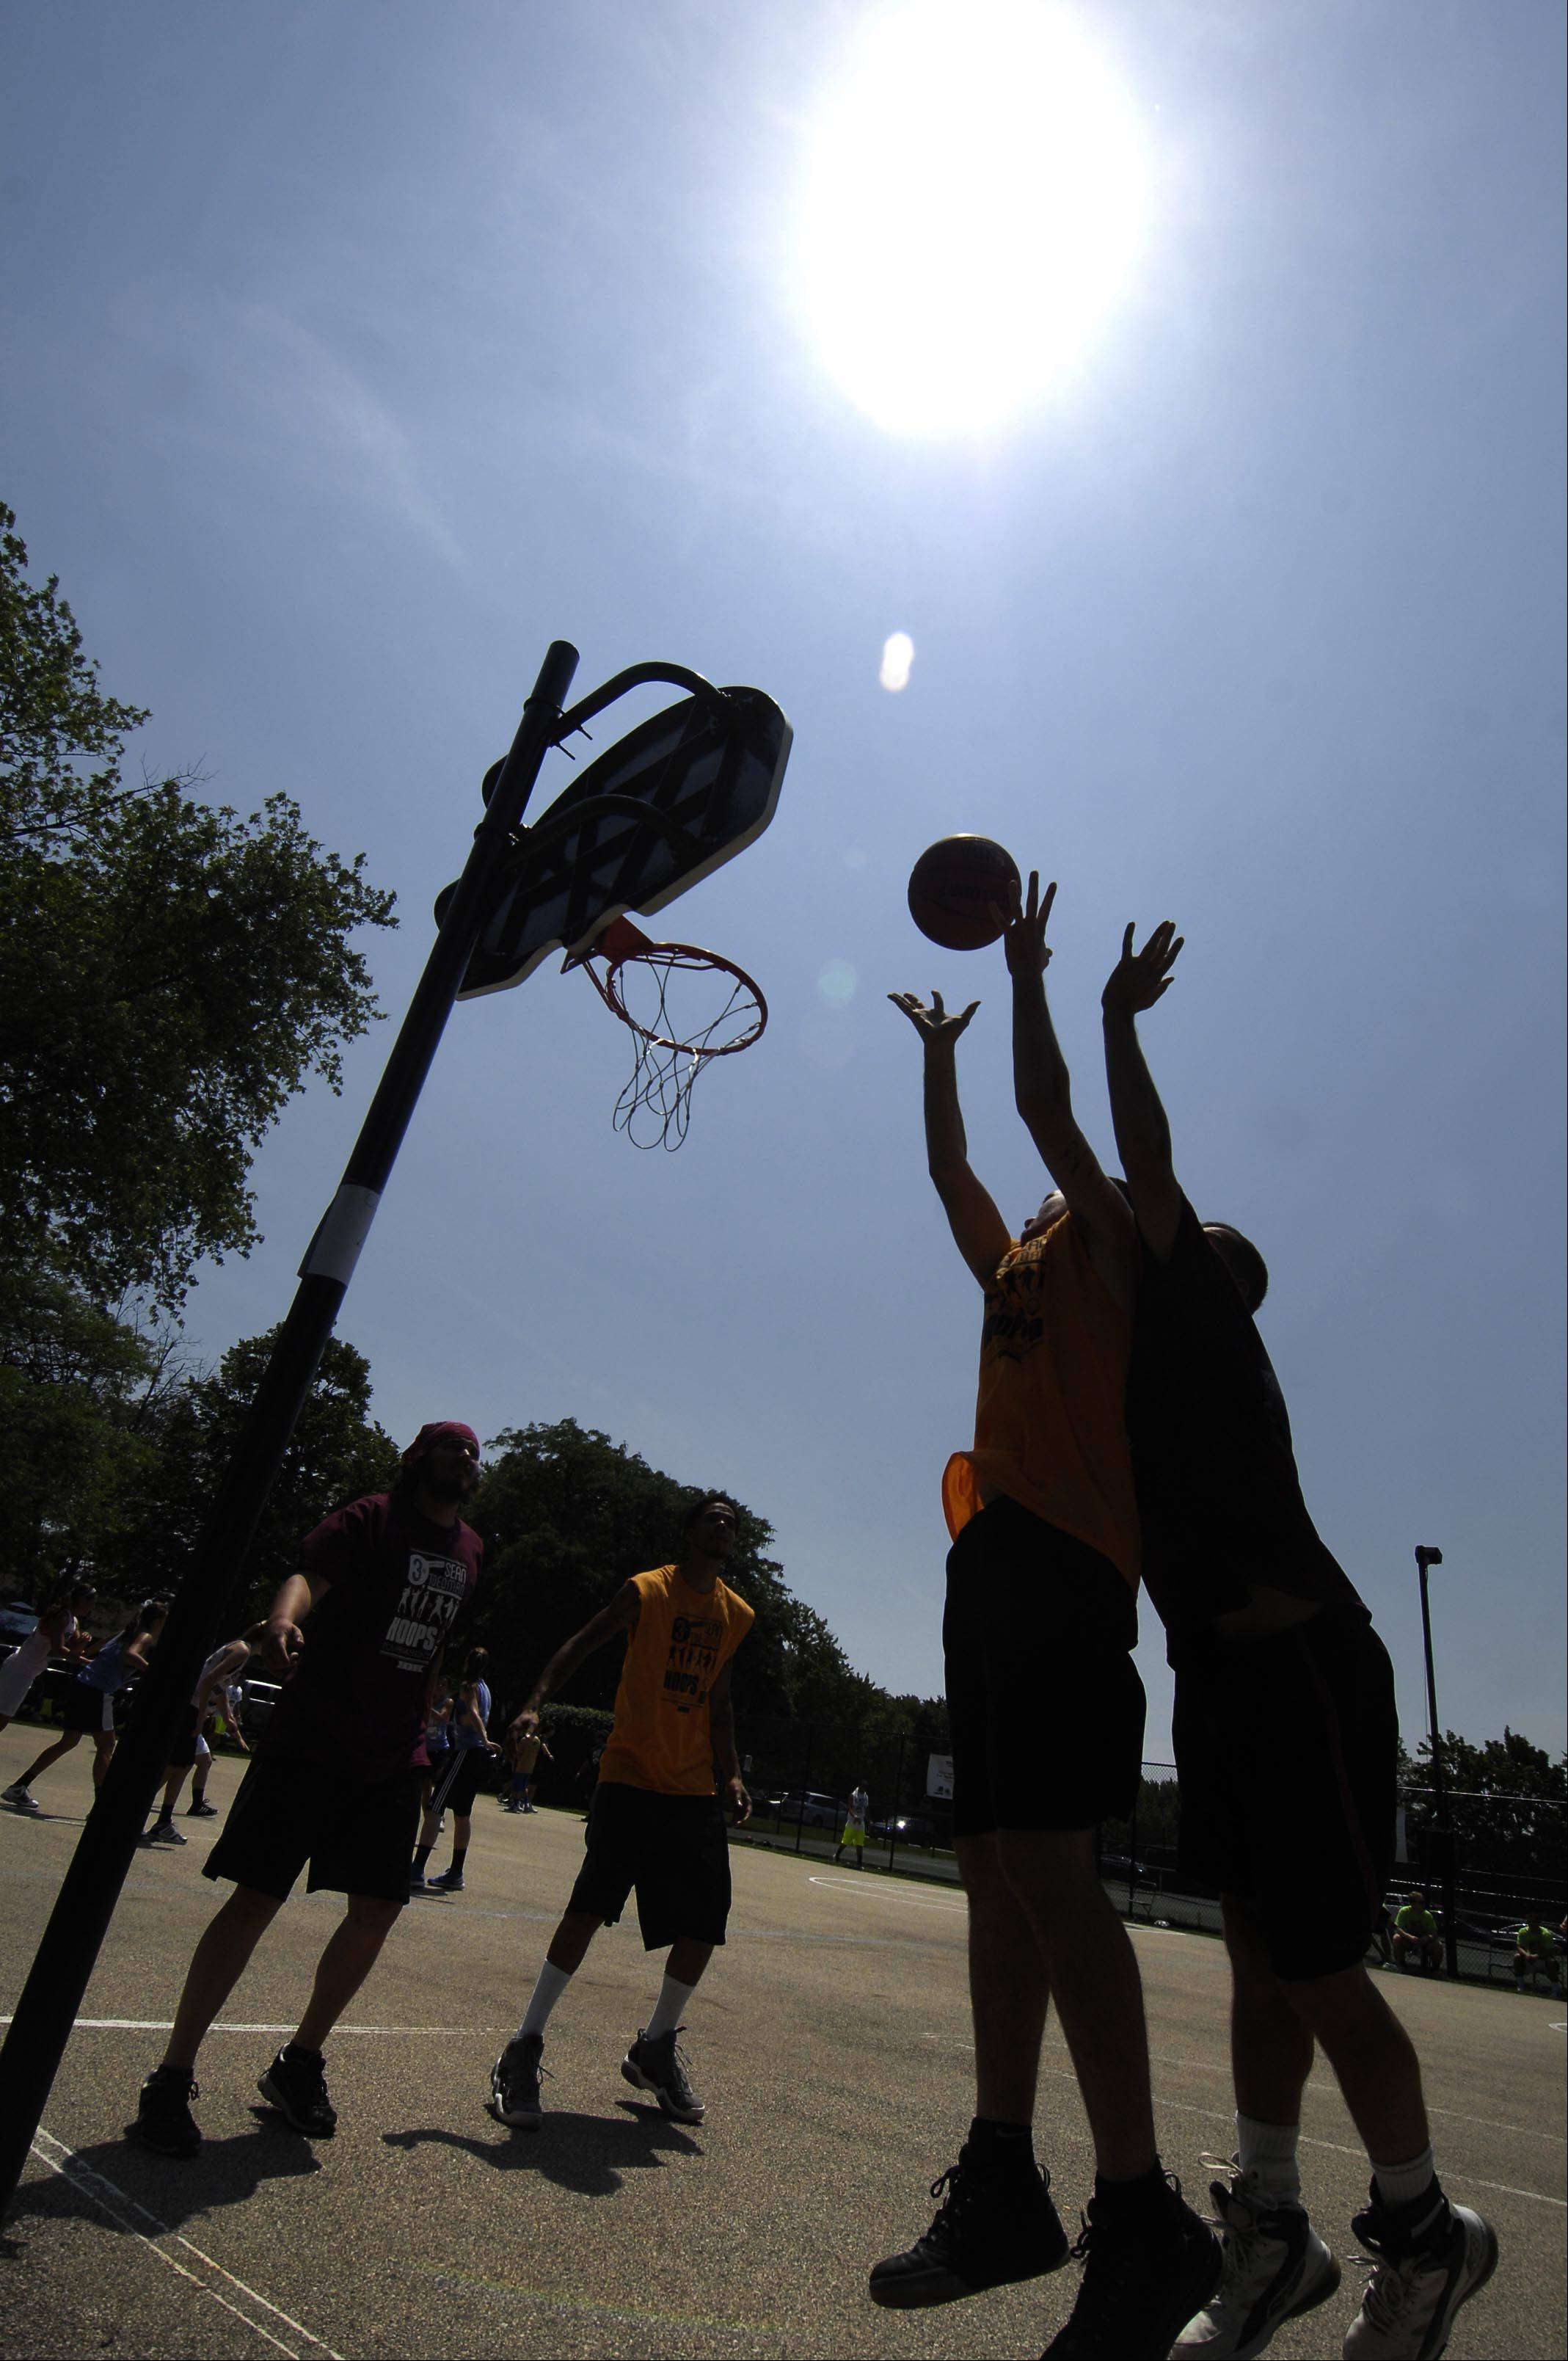 Players compete under the hot sun in June at the Sean Toedman Memorial 3-on-3 basketball tournament at Lions Park. The event raised more than $4,000 for pediatric cancer patients.